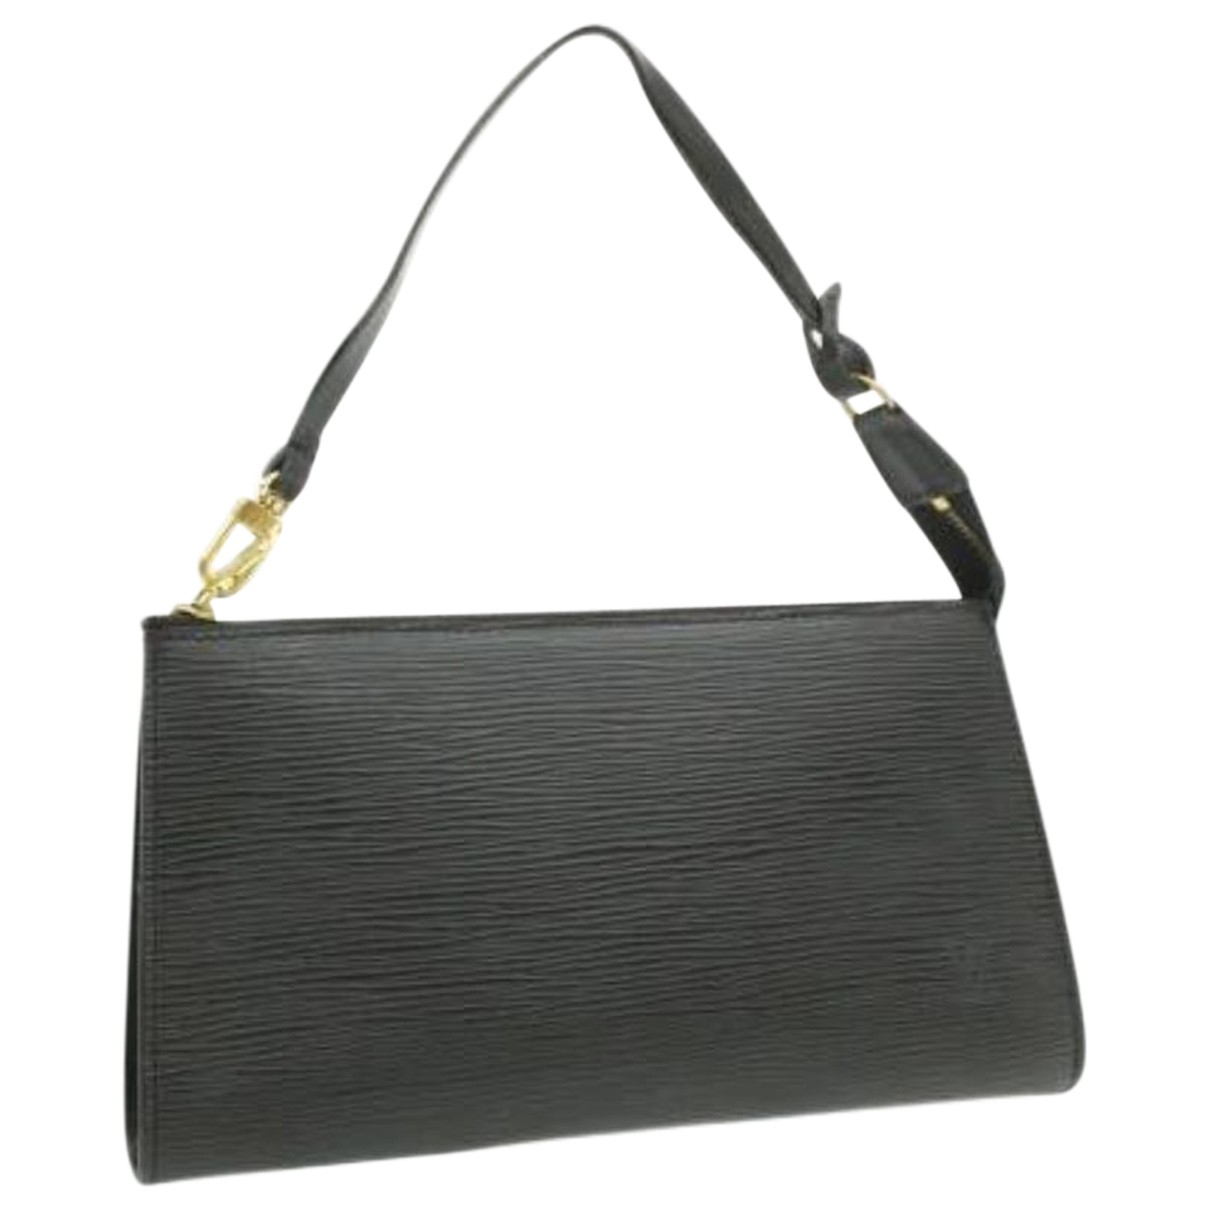 Louis Vuitton N Black Leather handbag for Women N